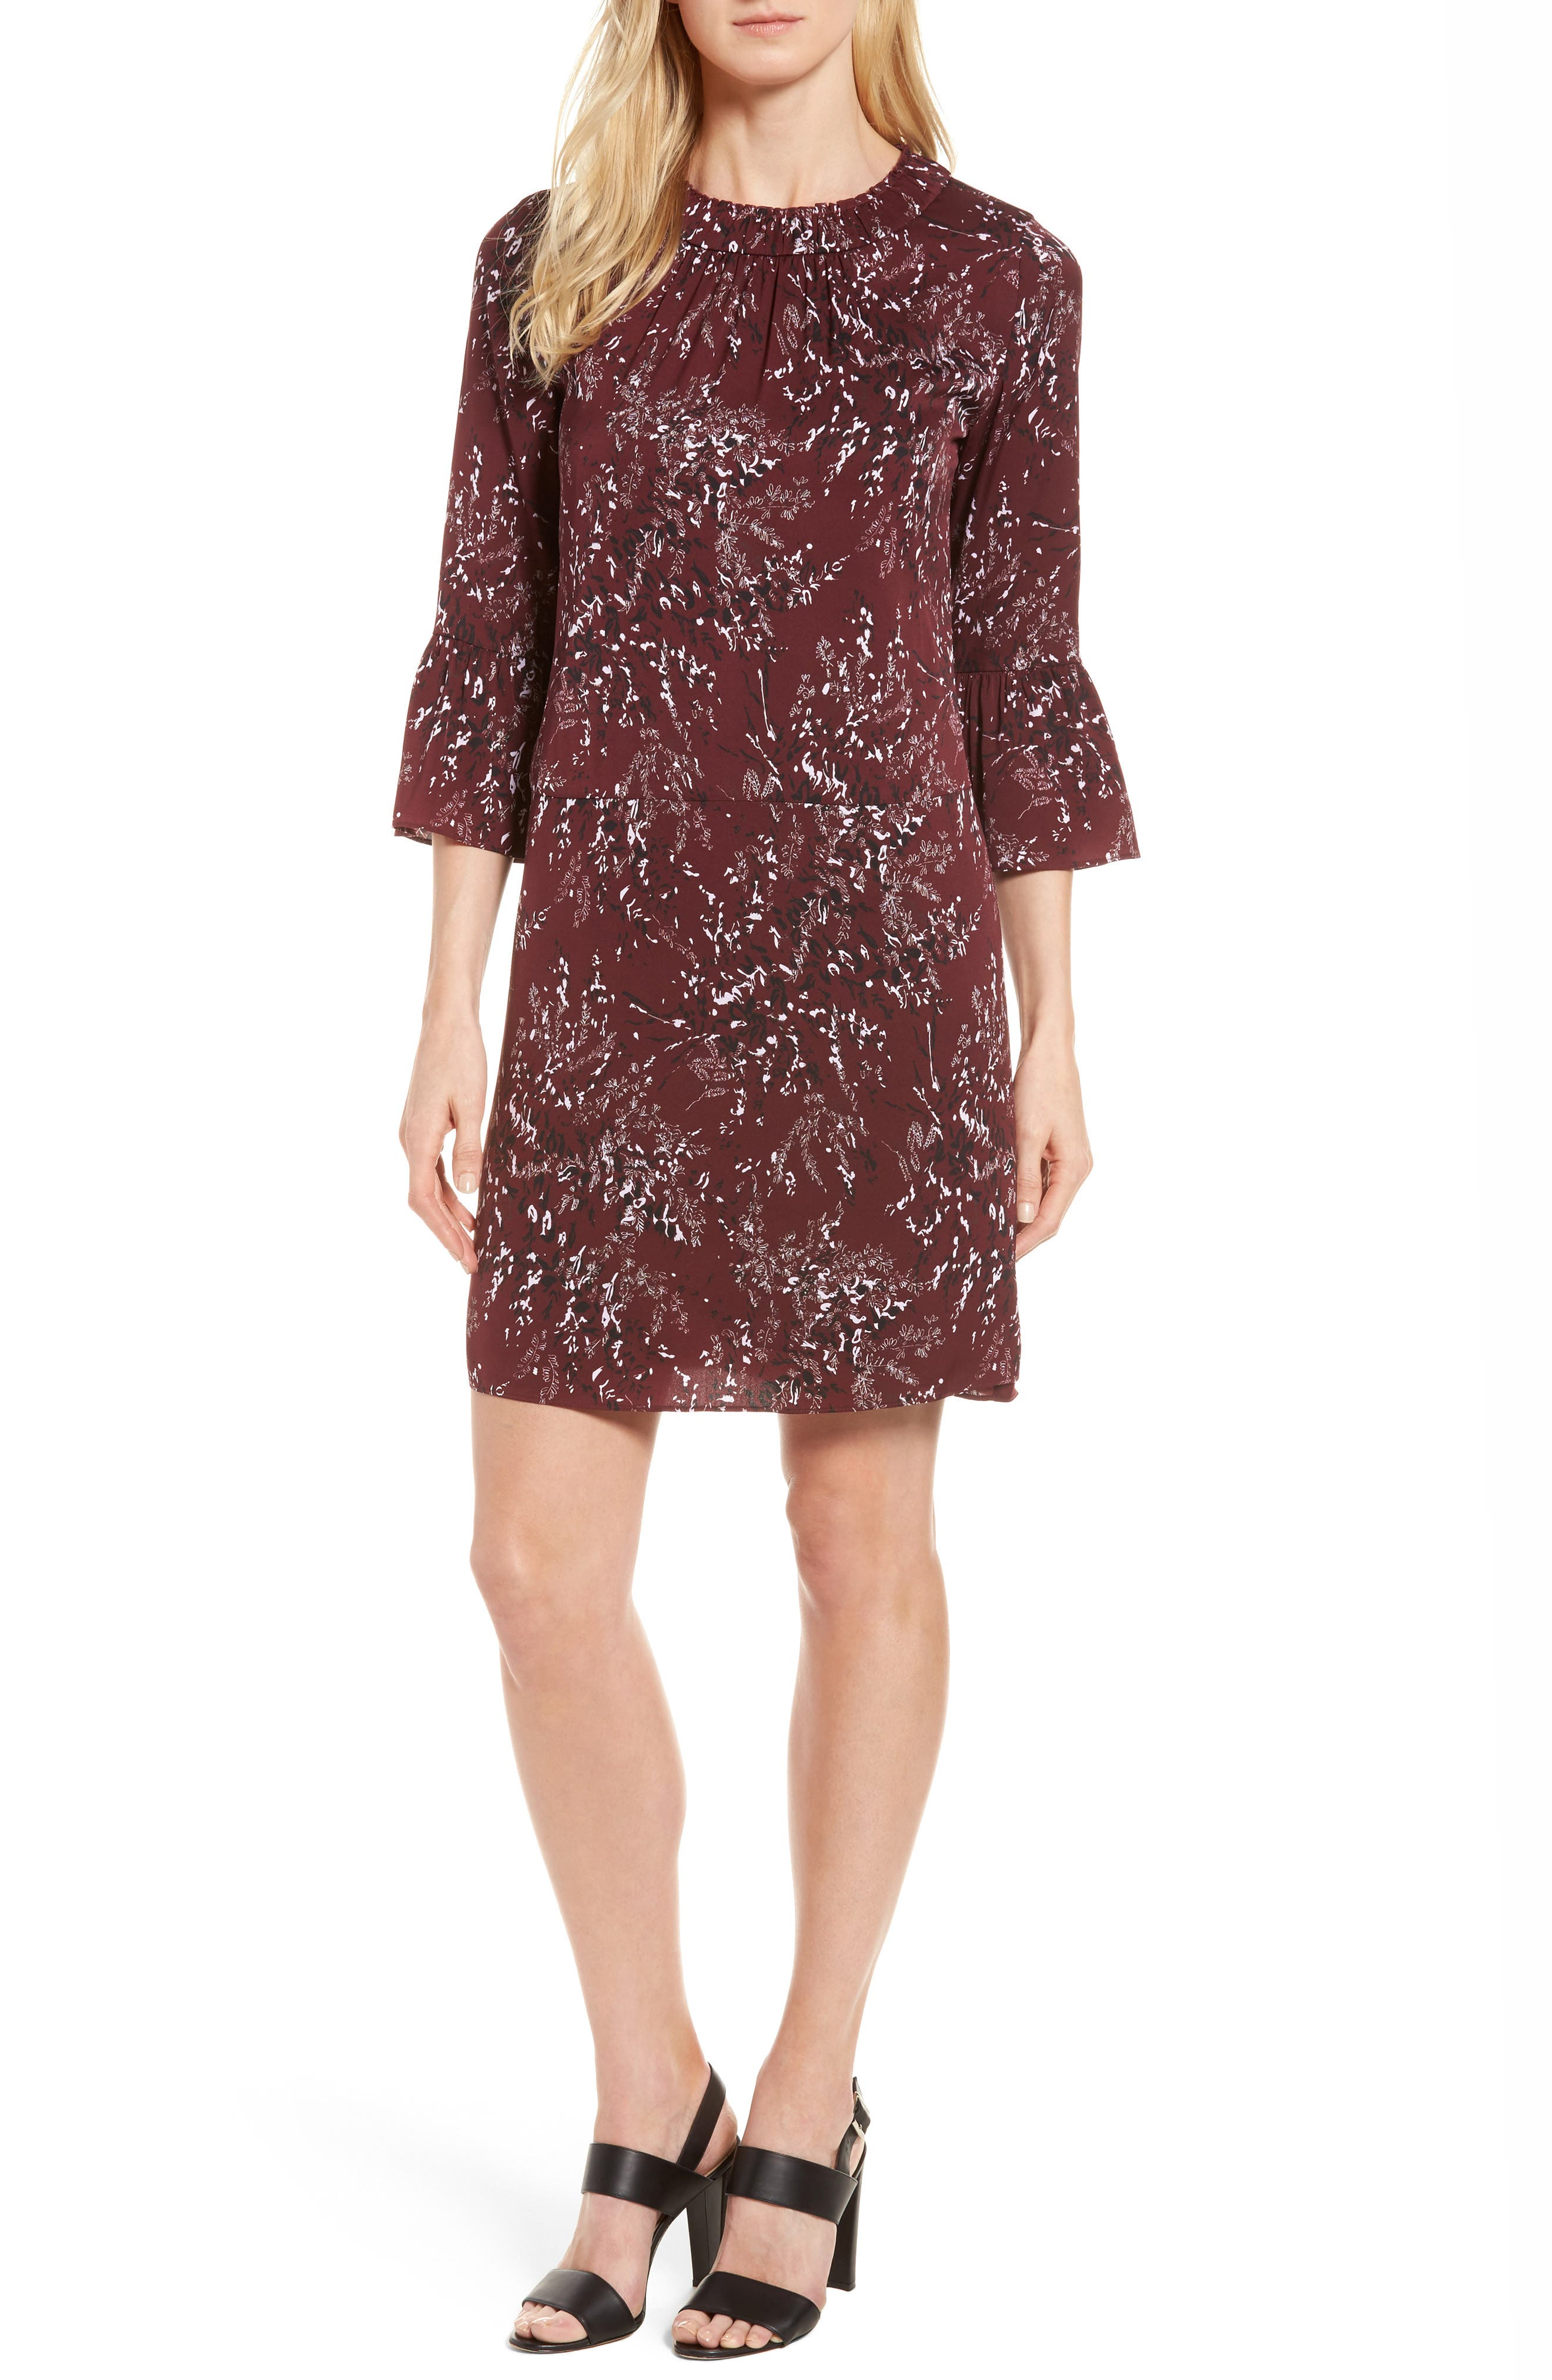 Alternate Image 1 Selected - Nordstrom Signature Floral Print Stretch Silk Minidress